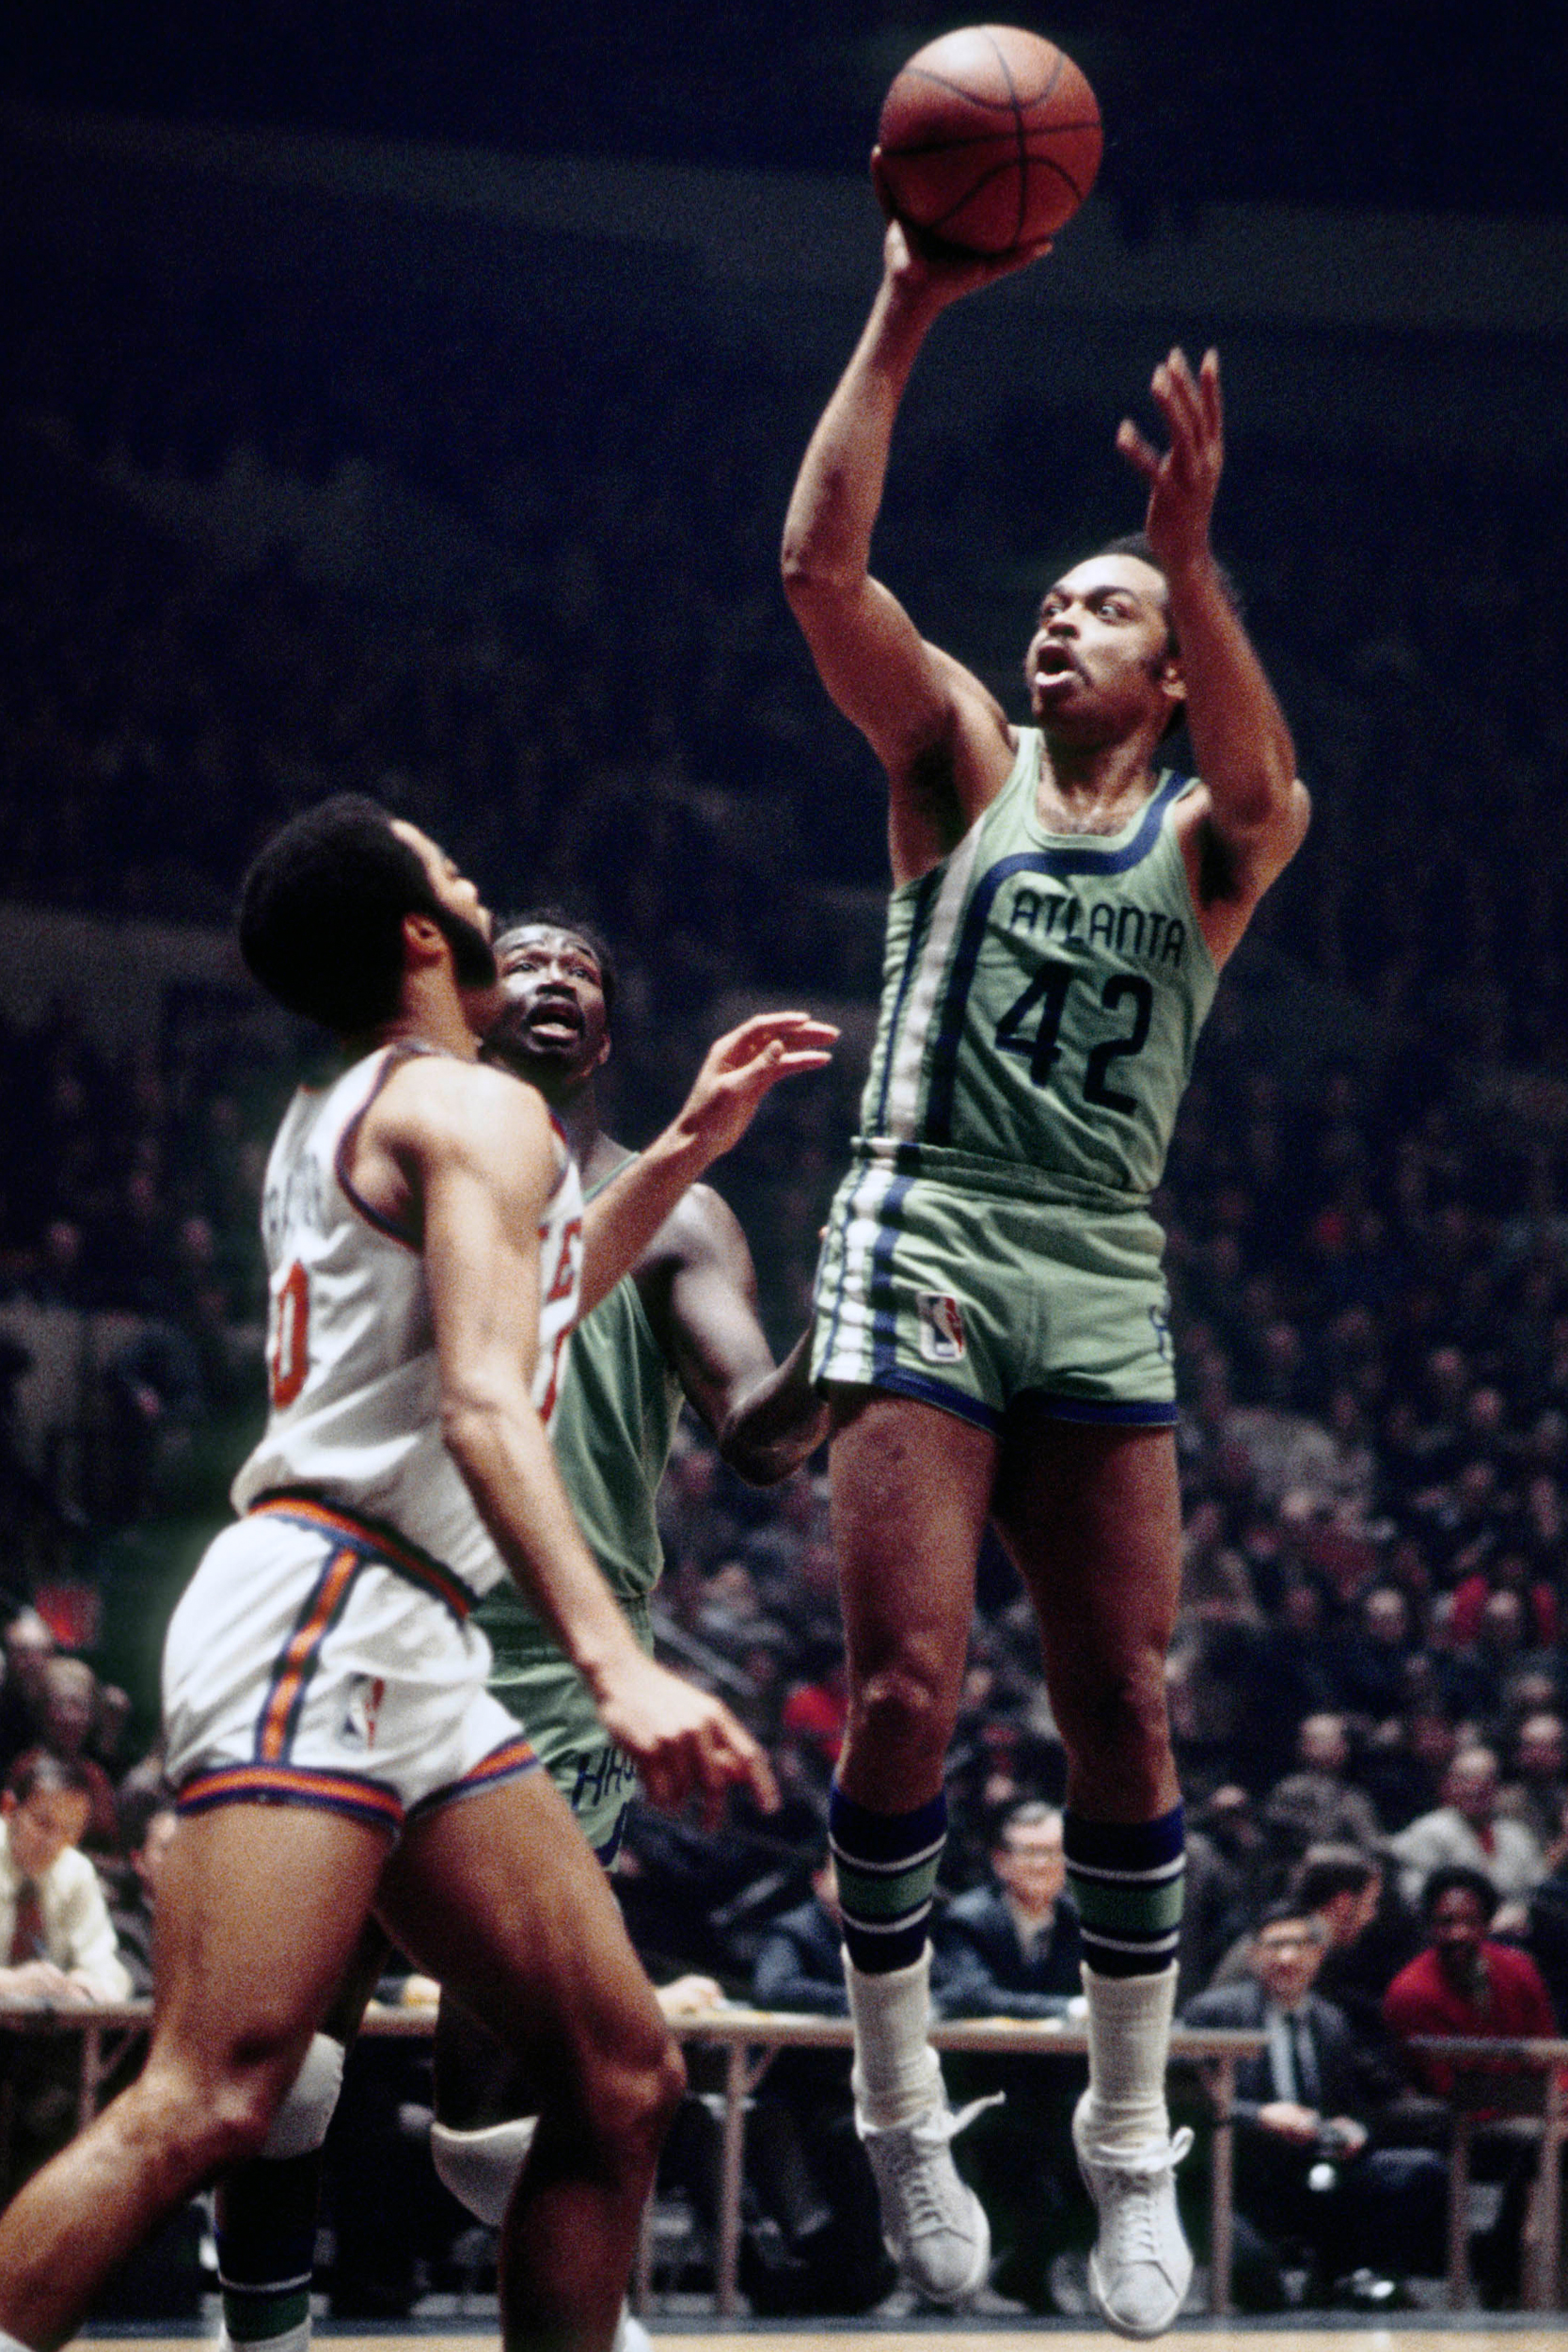 Atlanta Hawks guard Walt Hazzard (42), also known as Mahdi Abdul-Rahman in action against the New York Knicks at Madison Square Garden.